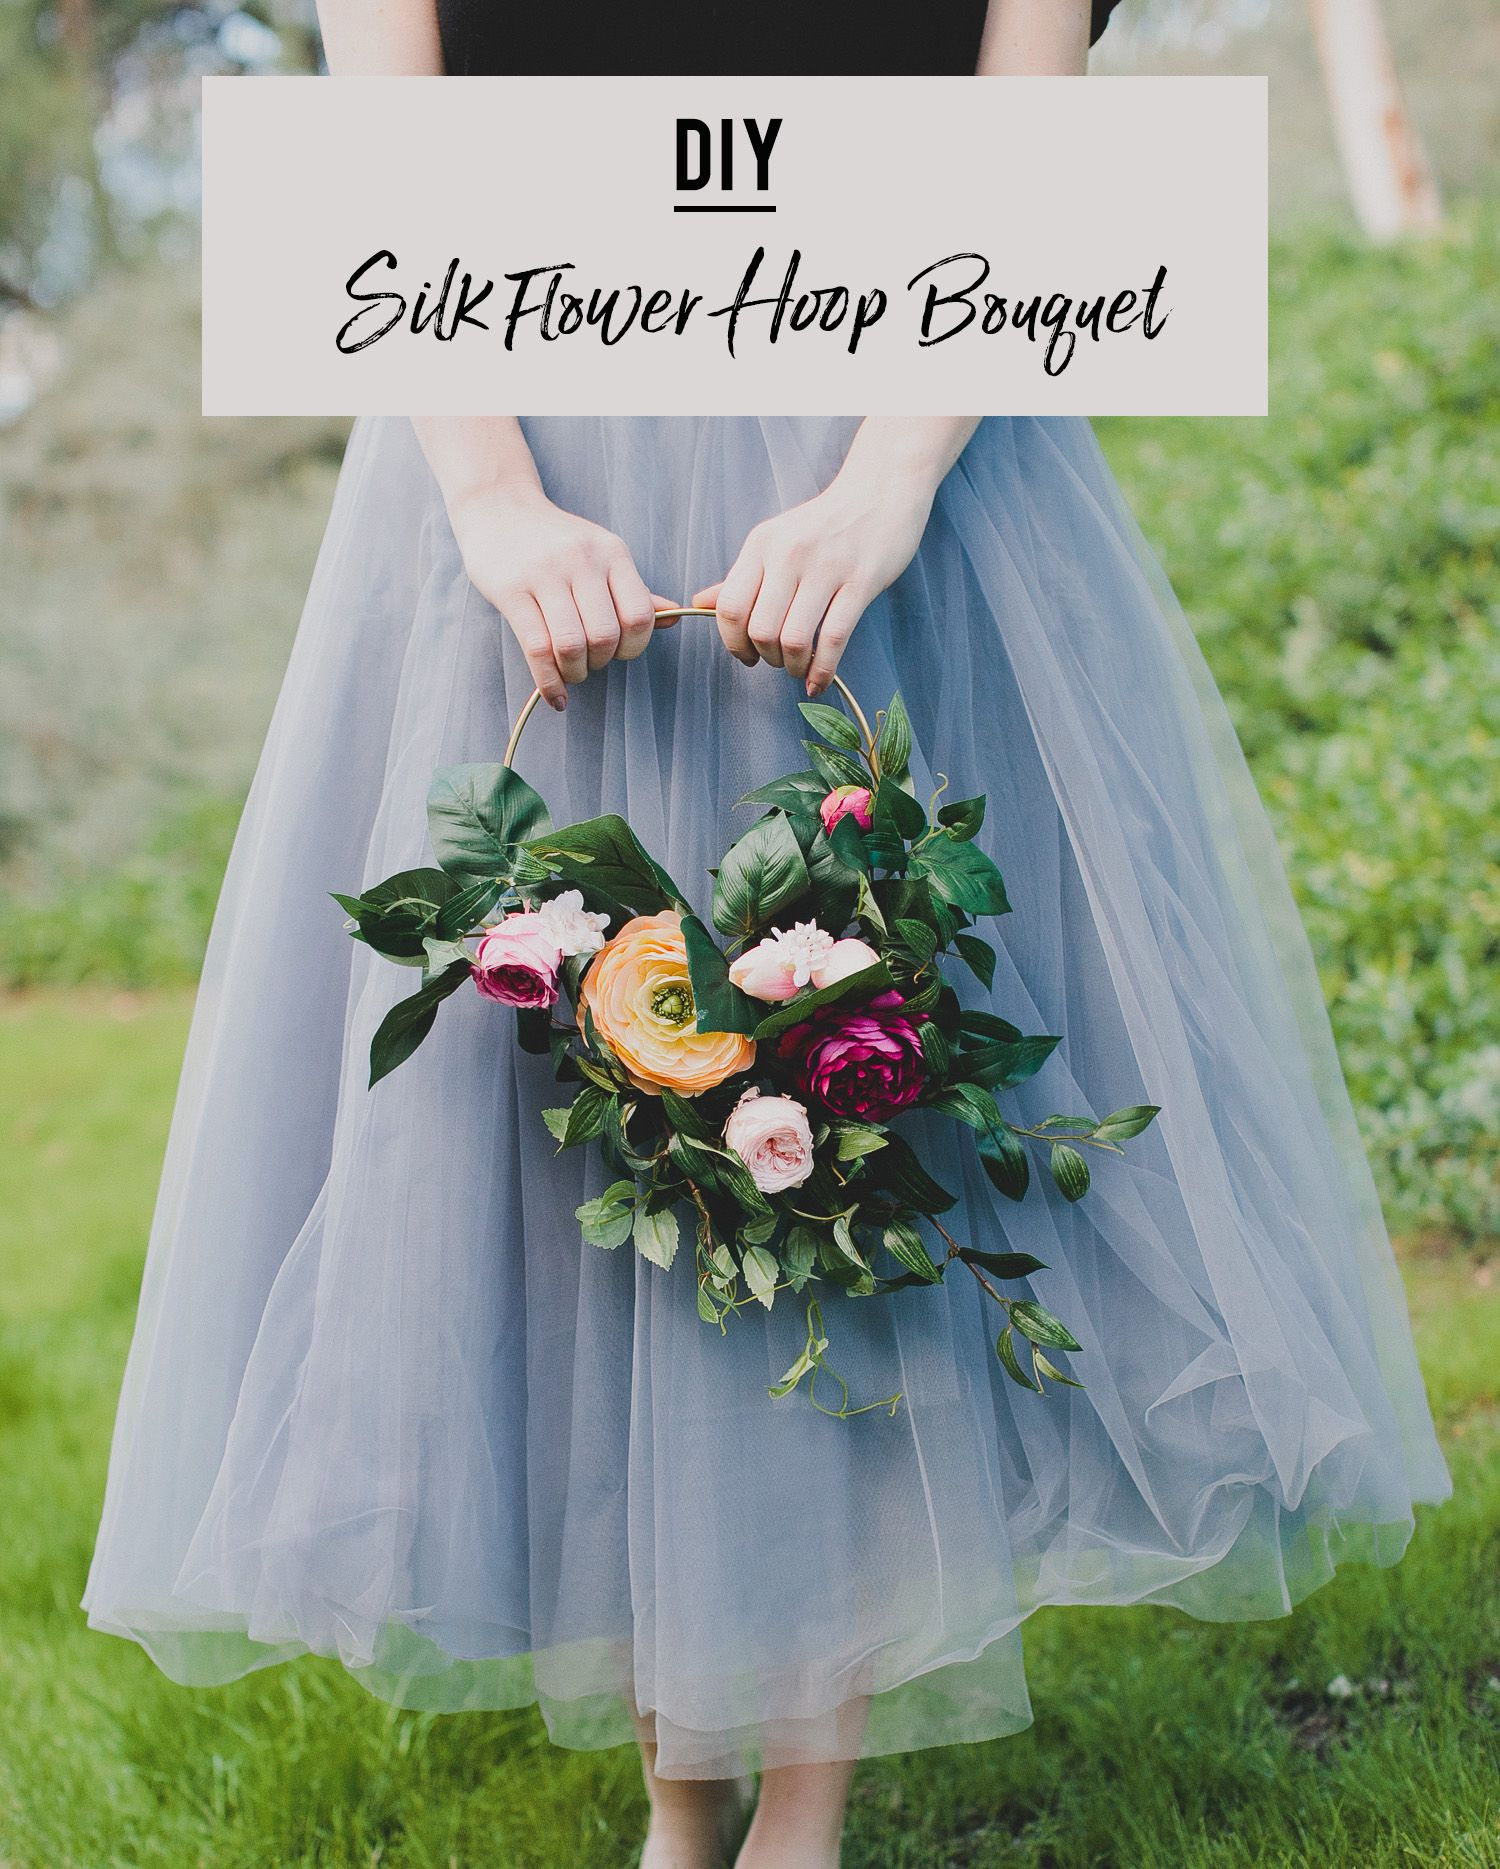 Making A Wedding Bouquet With Silk Flowers: How To DIY A Silk Flower Hoop Bouquet